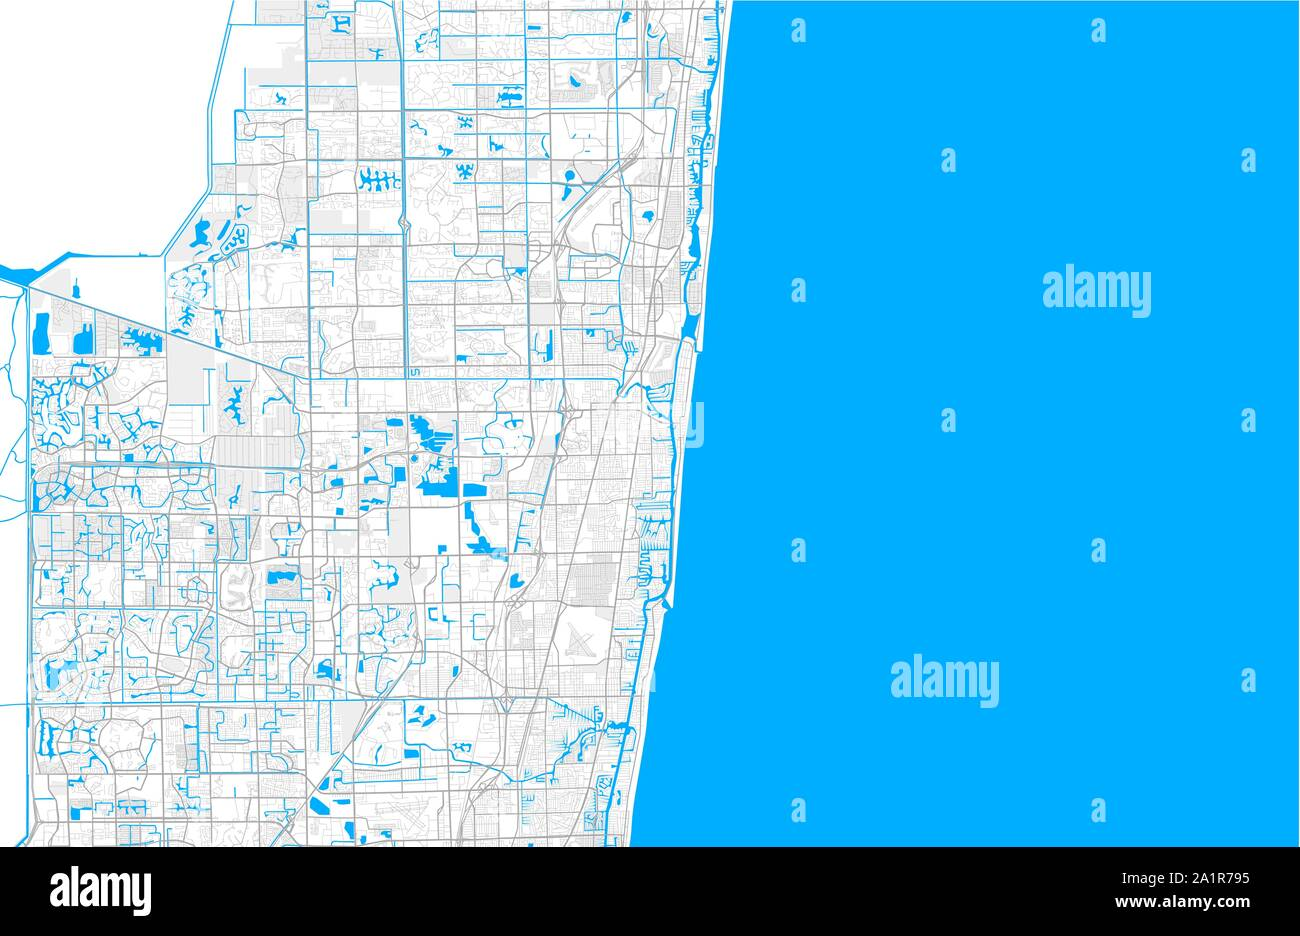 Rich detailed vector area map of Deerfield Beach, Florida ... on big map of florida, political map of florida, towns of florida, southern florida, full large map of florida, sarasota florida, plantation florida, printable map of florida, full size map of florida, highway map of florida, ocala florida, map of brandon florida, map of pace florida, topo map of florida, satellite map of florida, key largo florida, the villages florida, trinity florida, us map of florida, islands of florida,